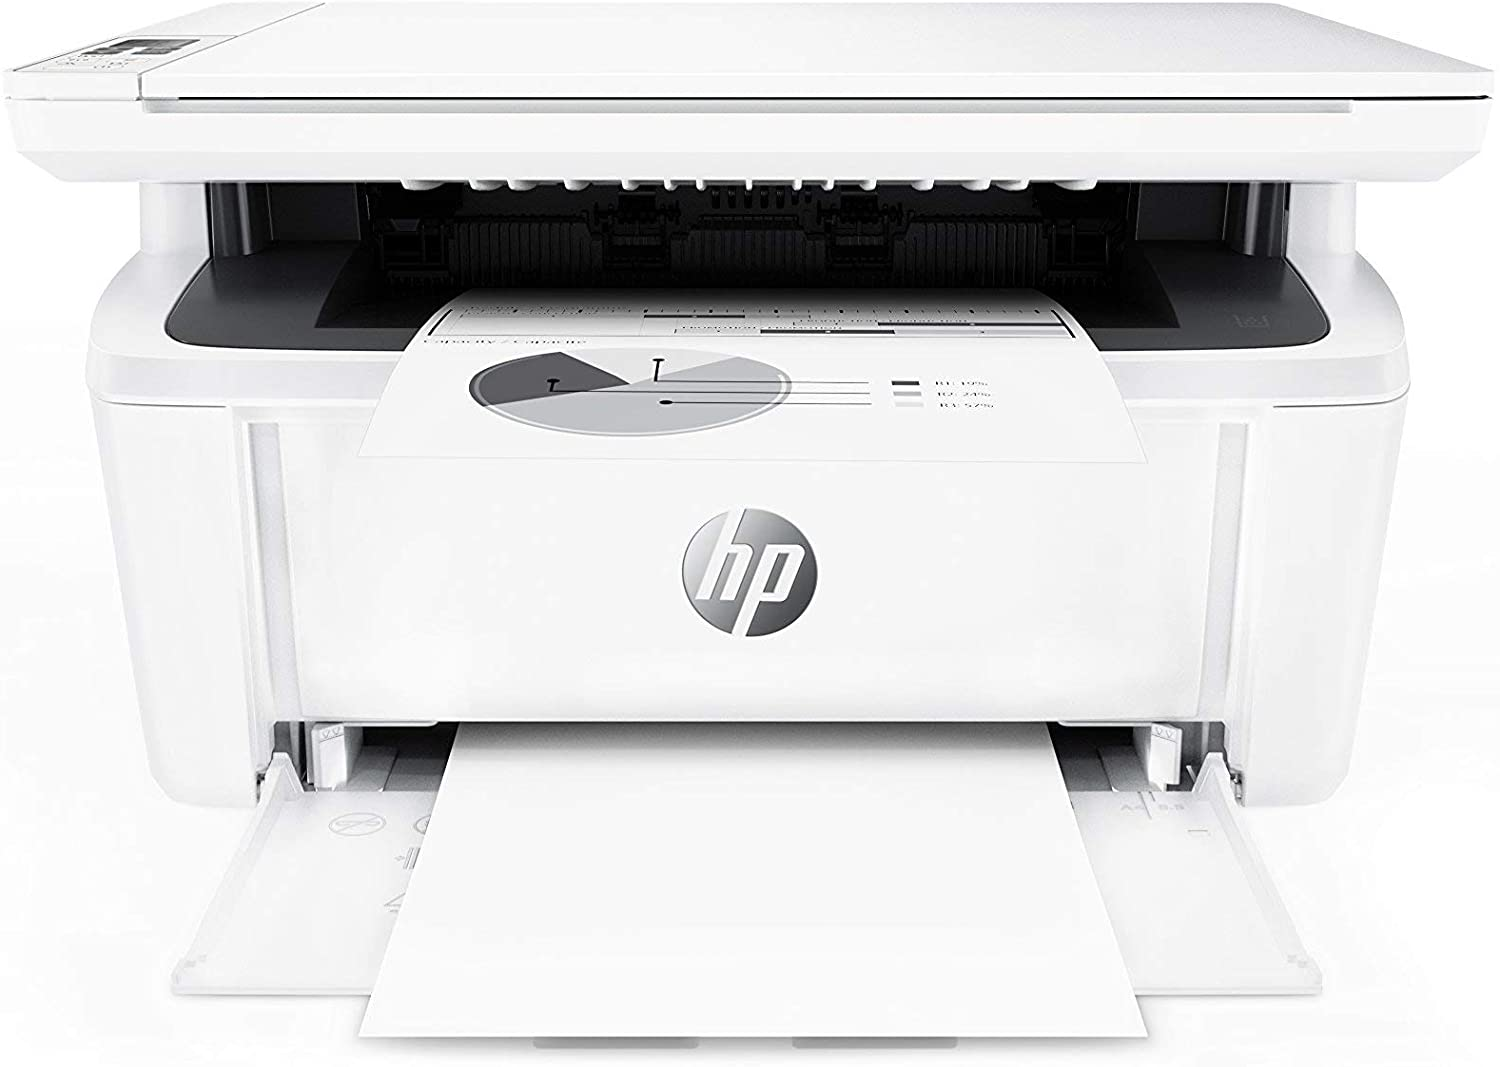 HP Laserjet Pro M29w All-in-One Wireless Monochrome Laser Printer with Mobile Printing (Y5S53A) (Renewed)